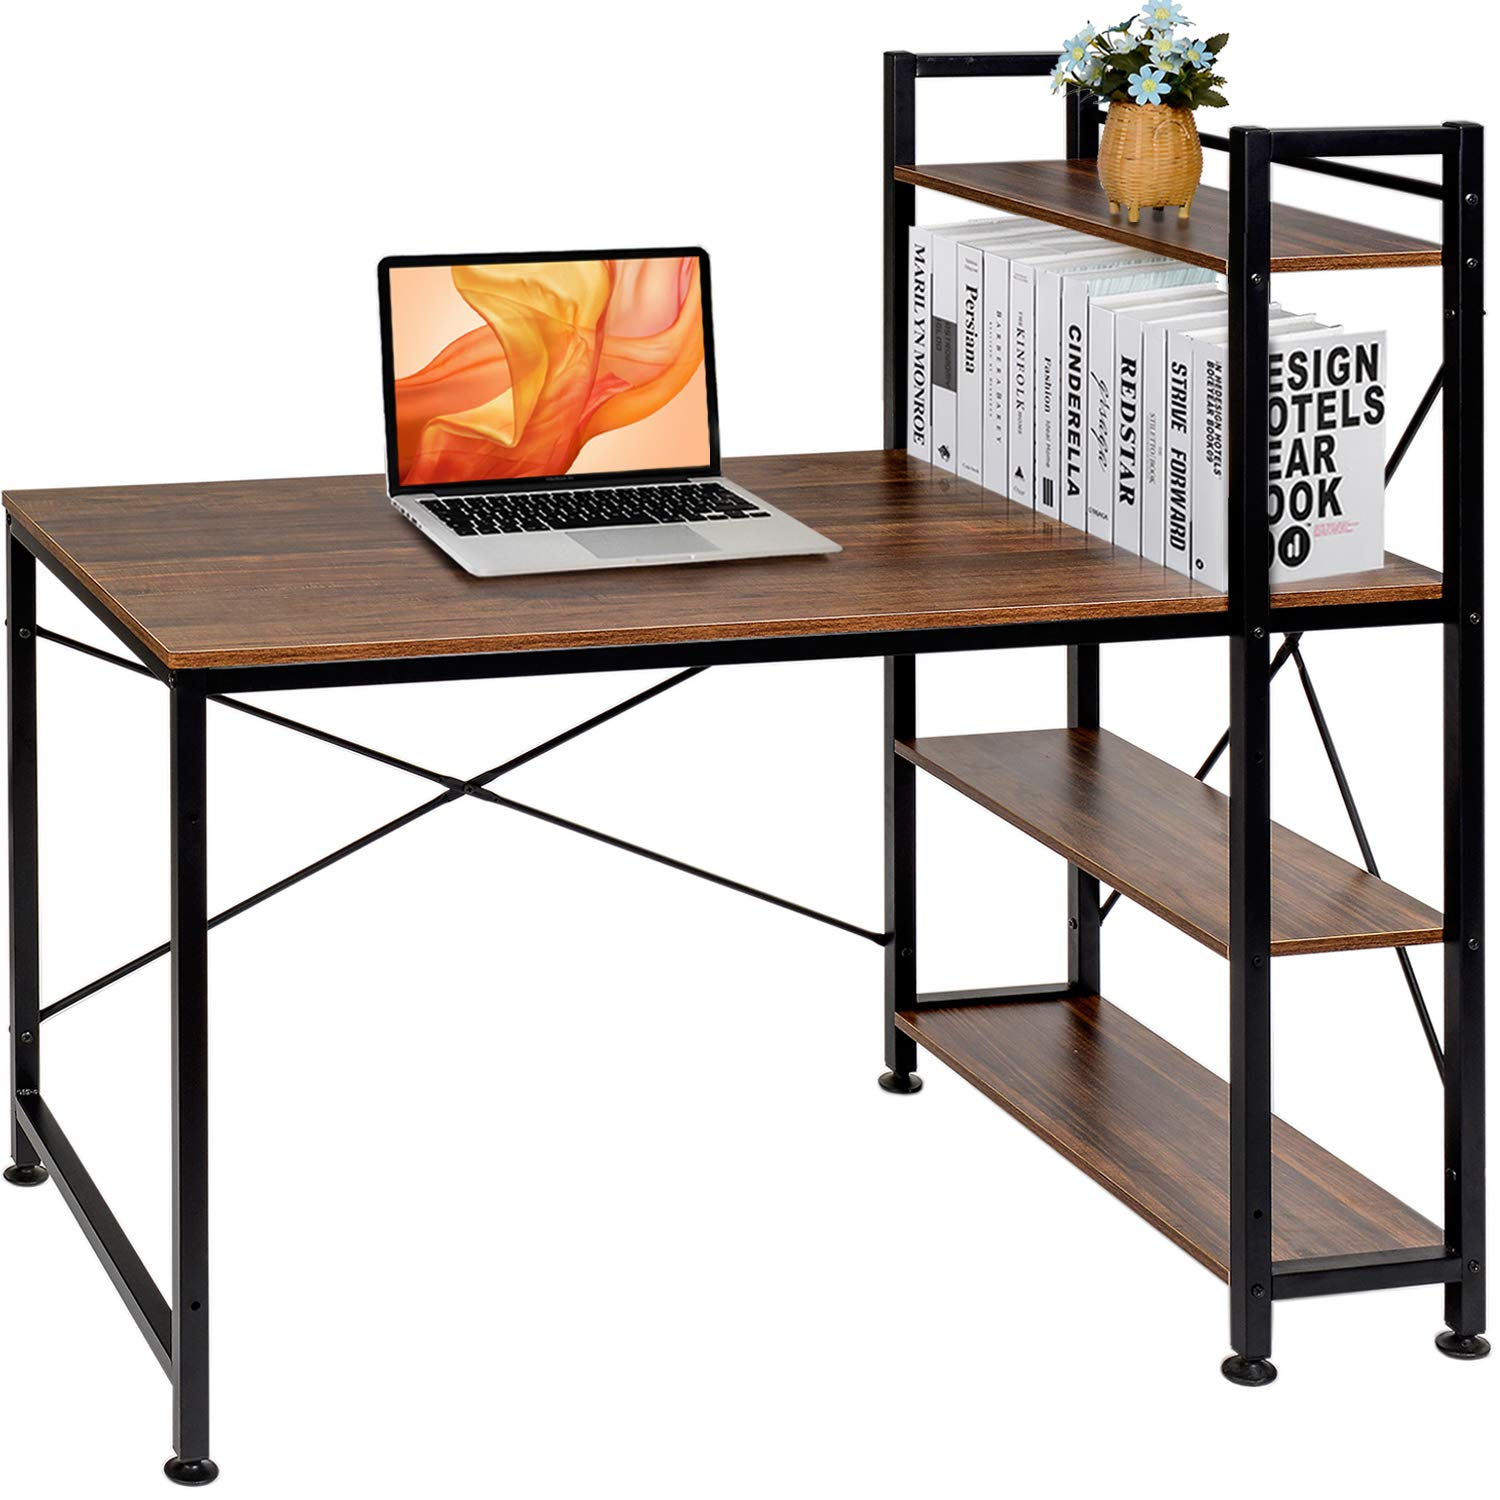 VECELO Computer Office Desk/Multipurpose Study Table with 4 Tier Bookshelves, Brown